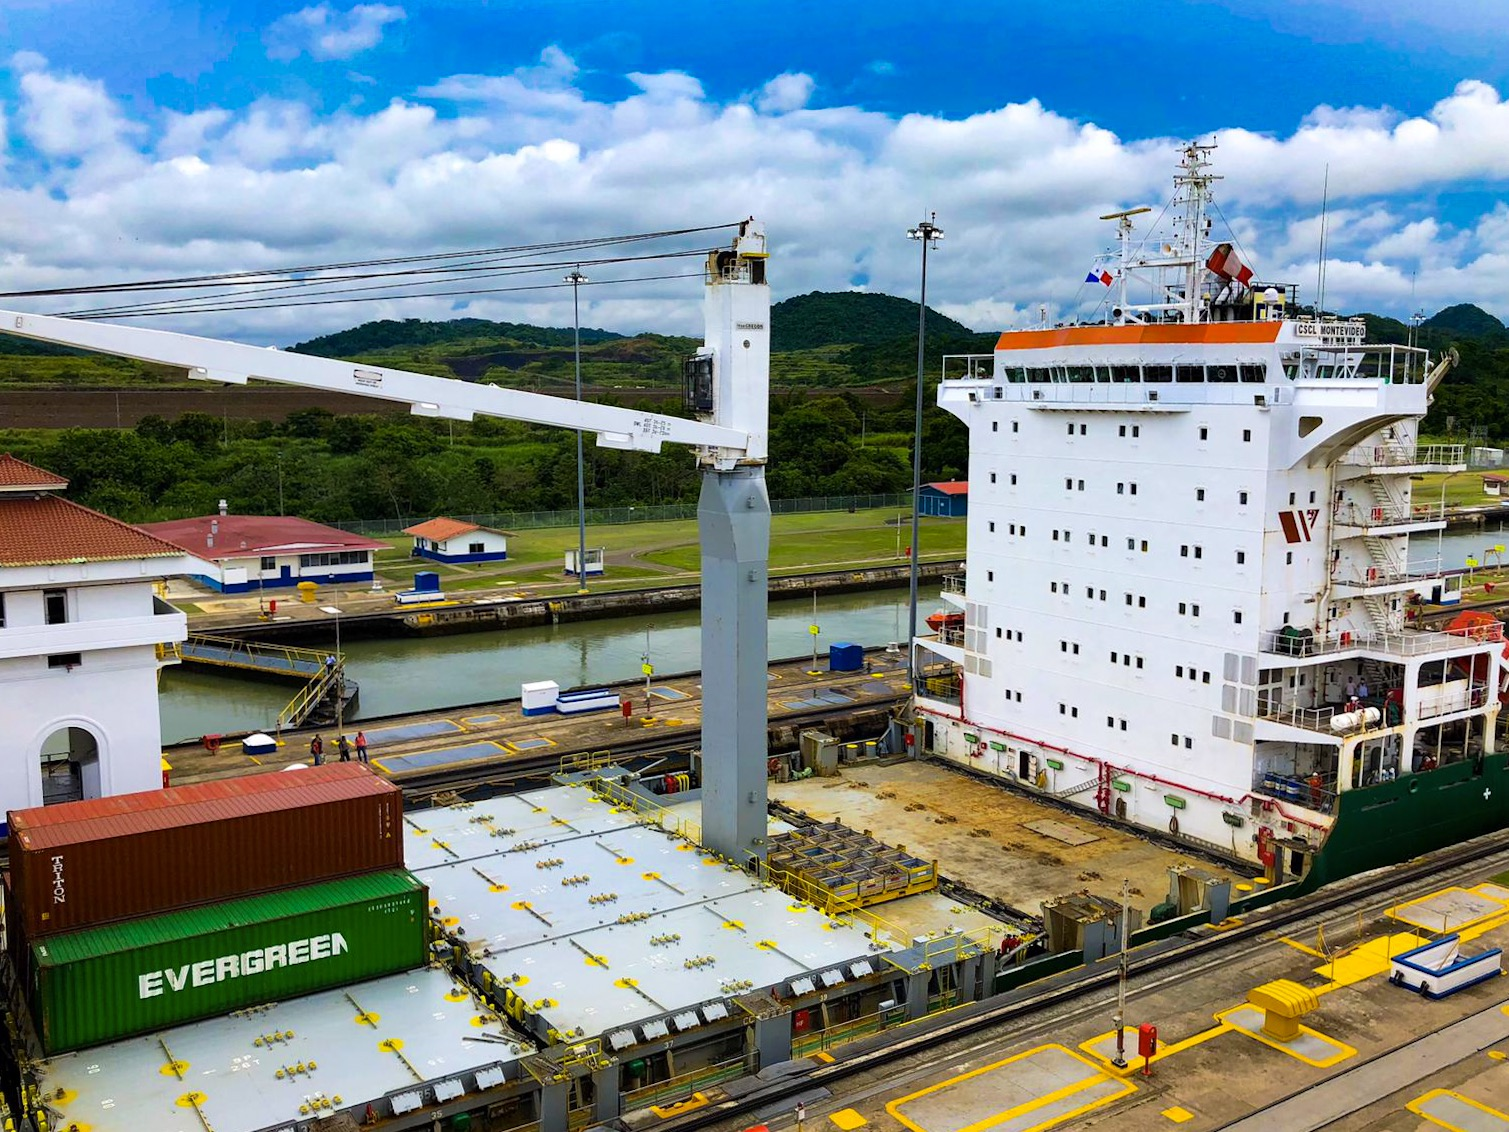 Panama canal, captured by Celia Ley